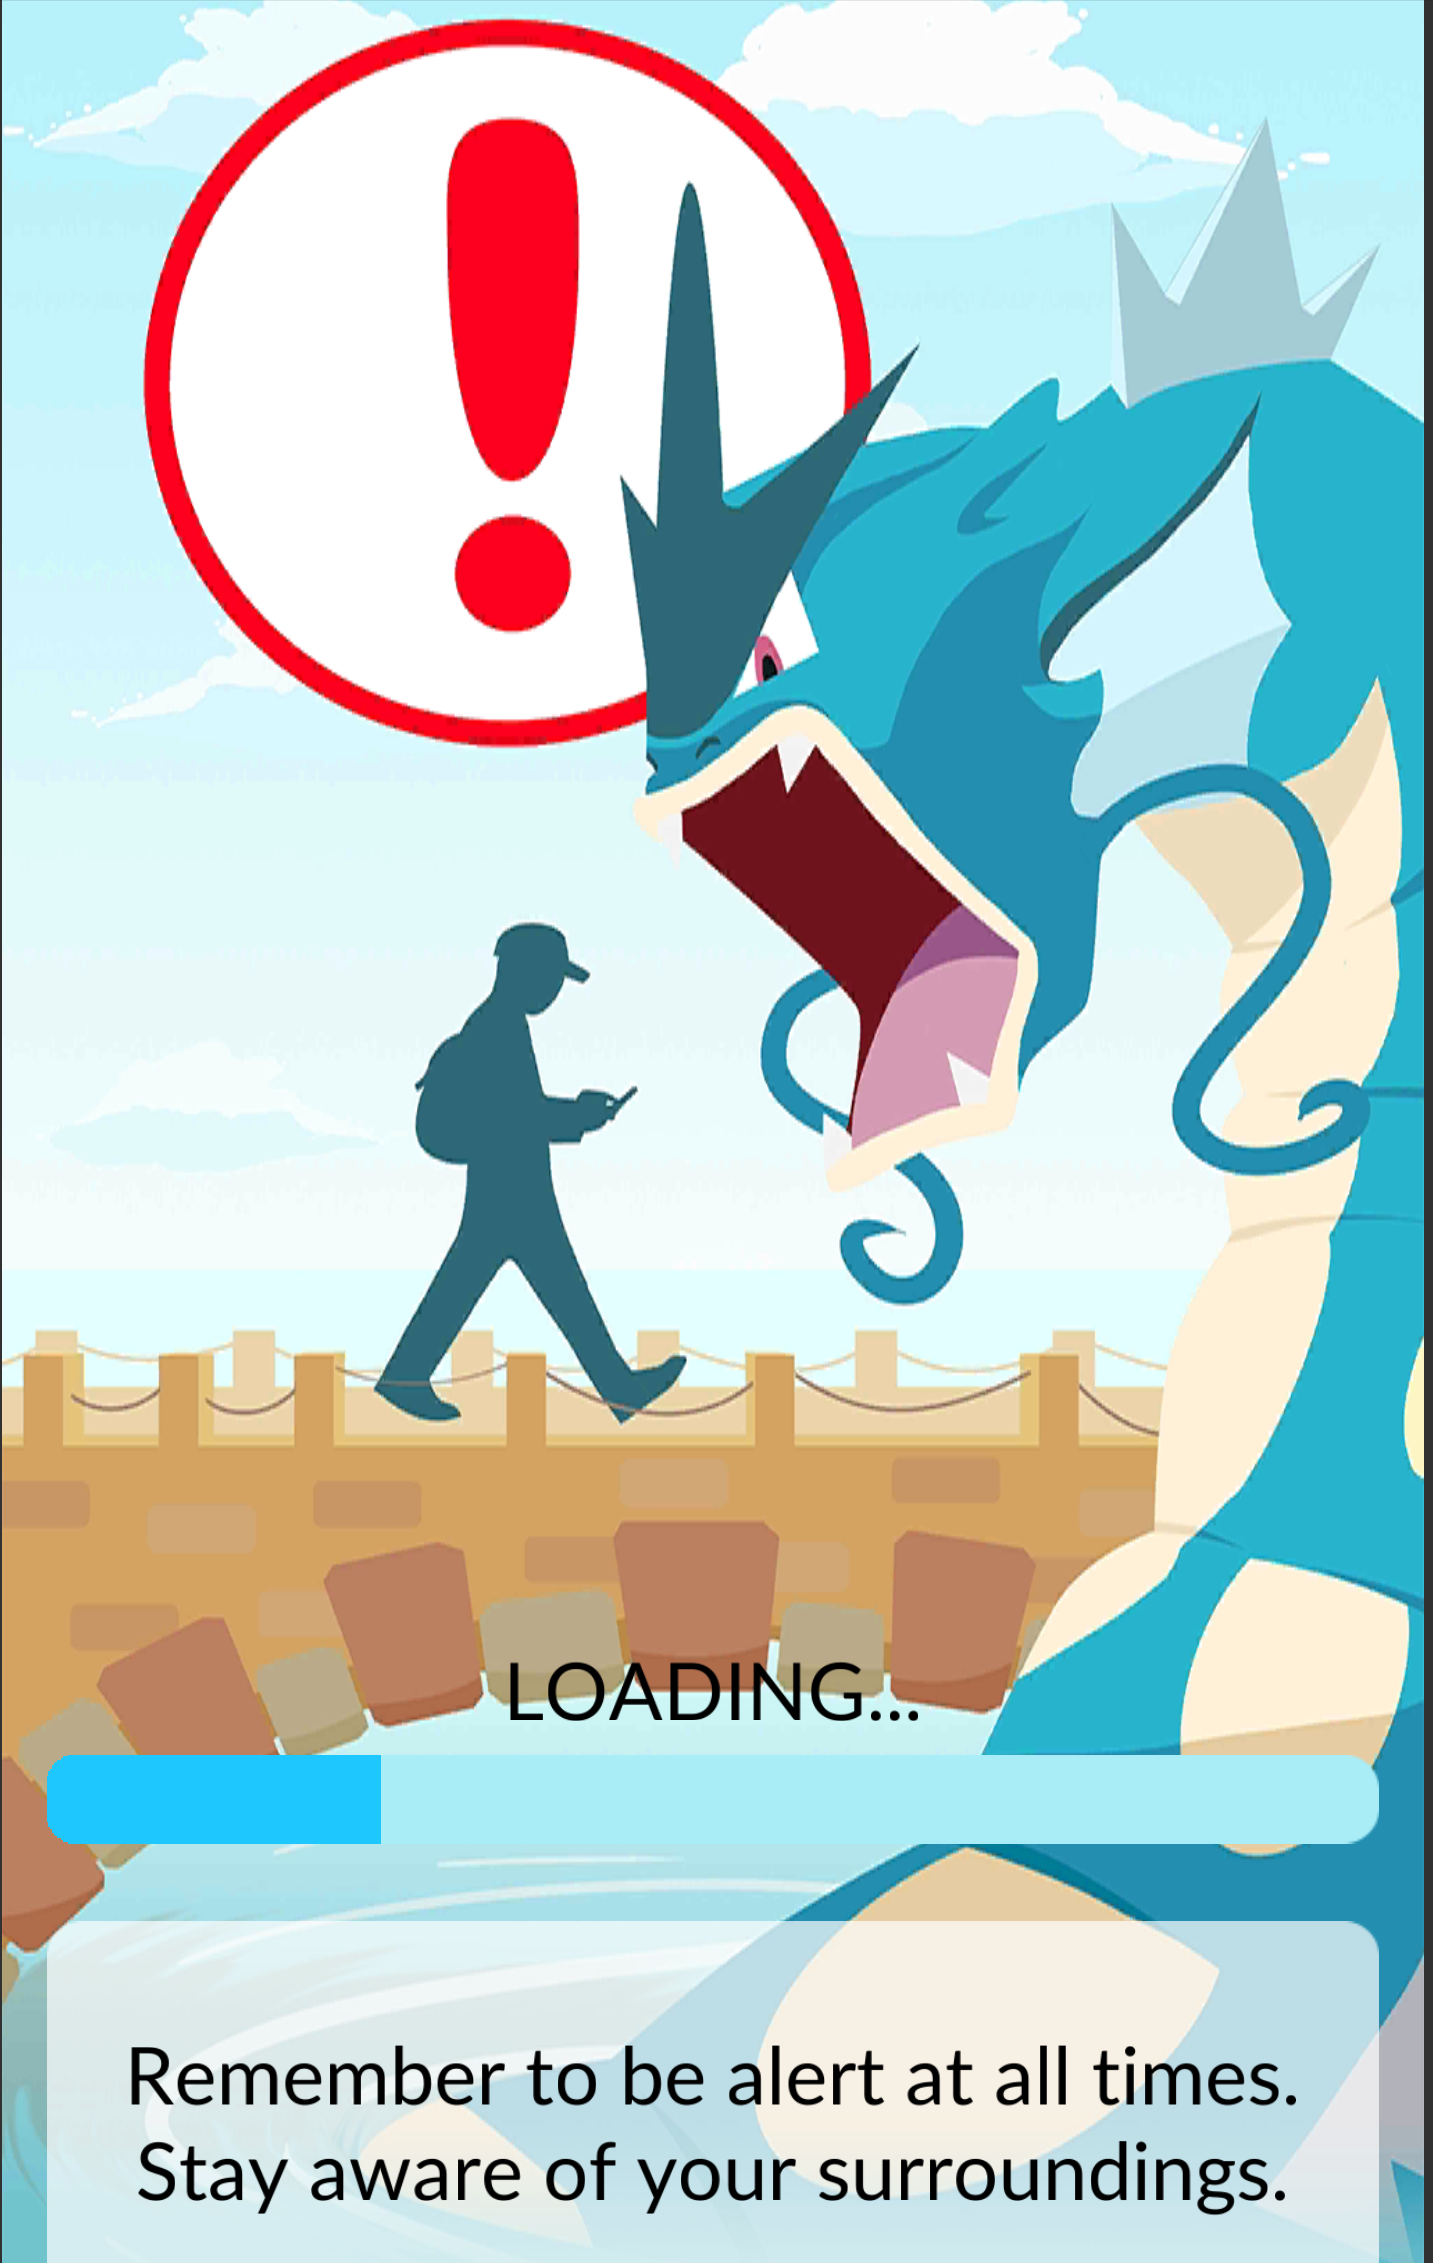 We wonder if Niantic is going to change this Pokémon Go loading screen after Friday's strange news.